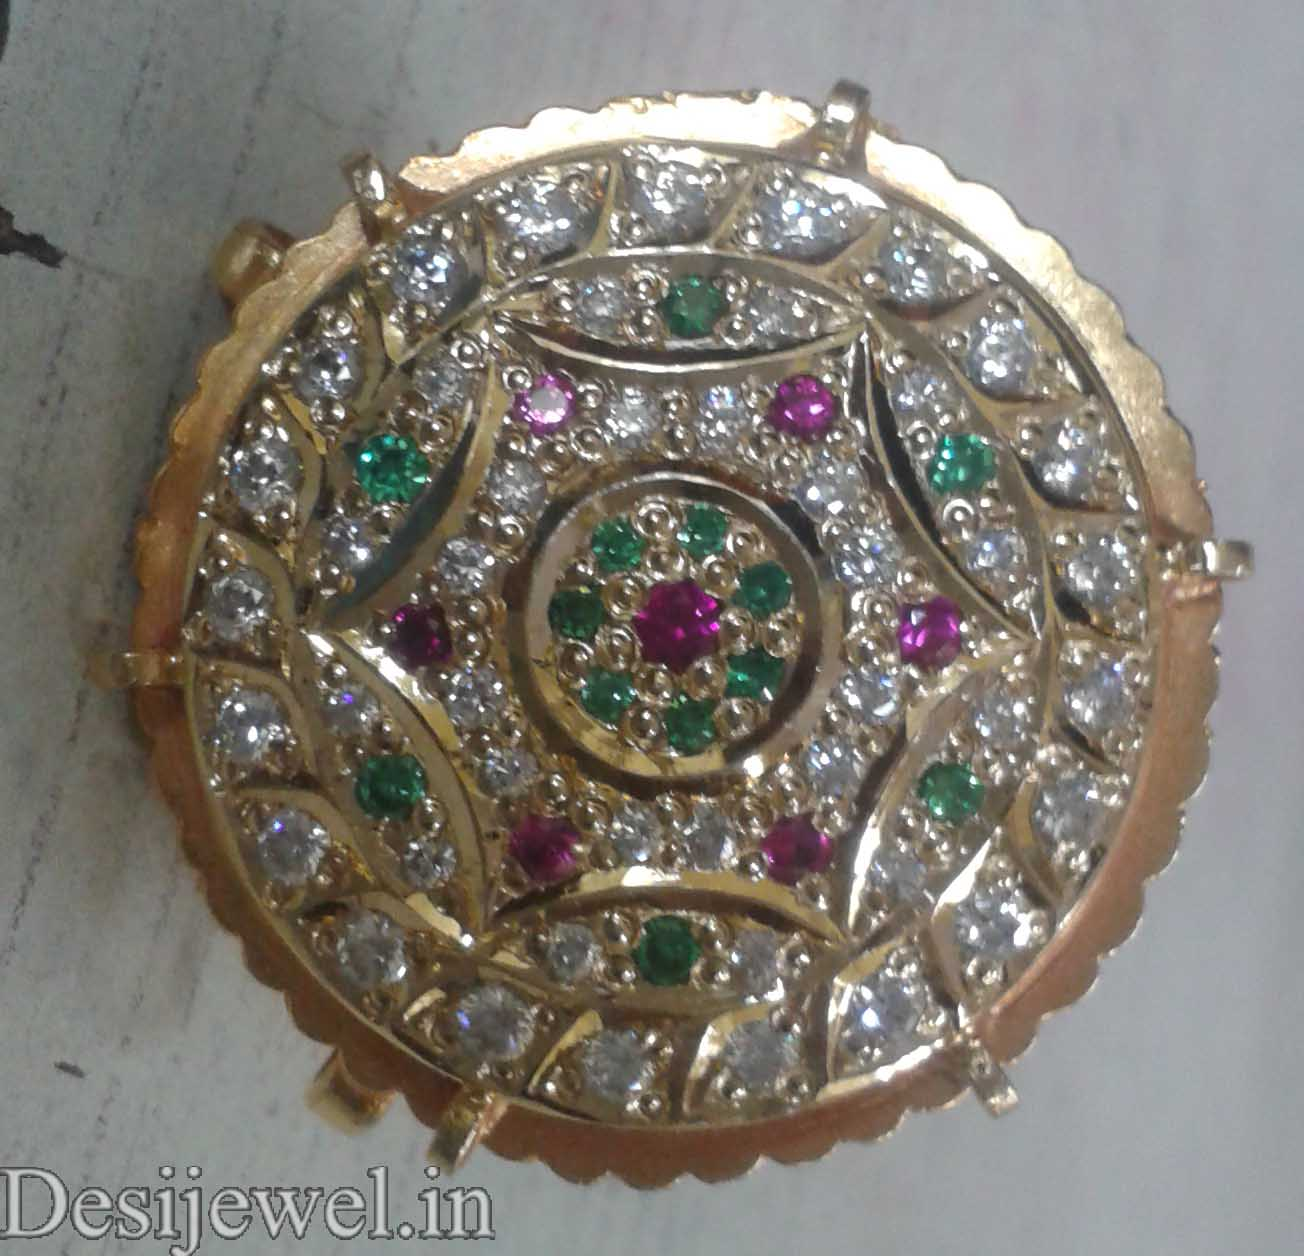 Marwadi Rajasthani Desi gold Rakhdi And Weight is 5 gm